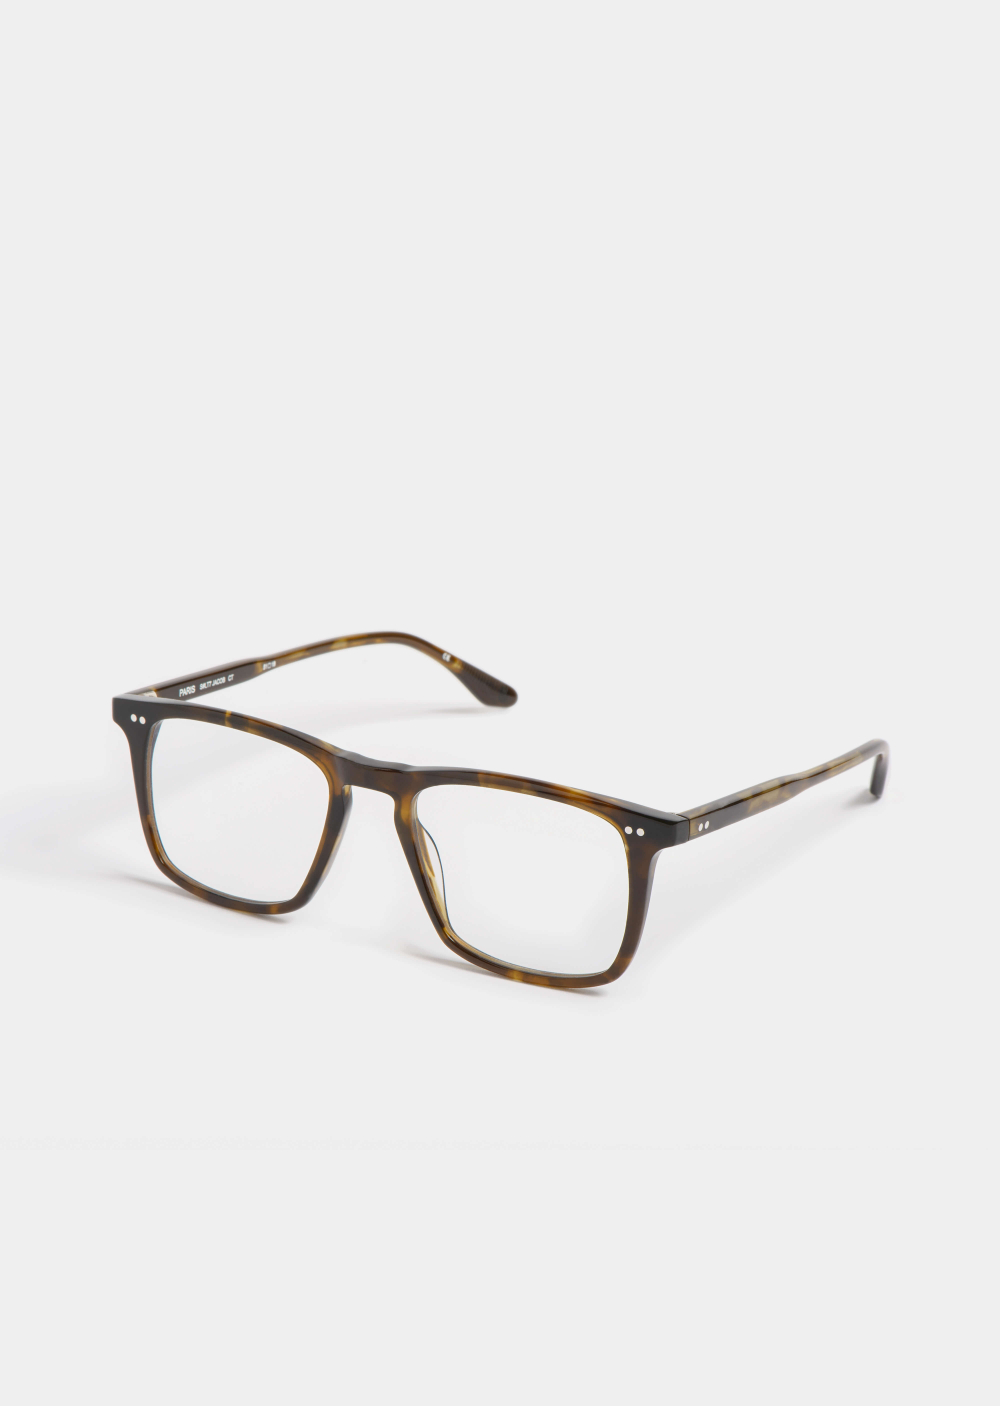 PETER AND MAY -  - LT7 Jacob RX camo tortoise